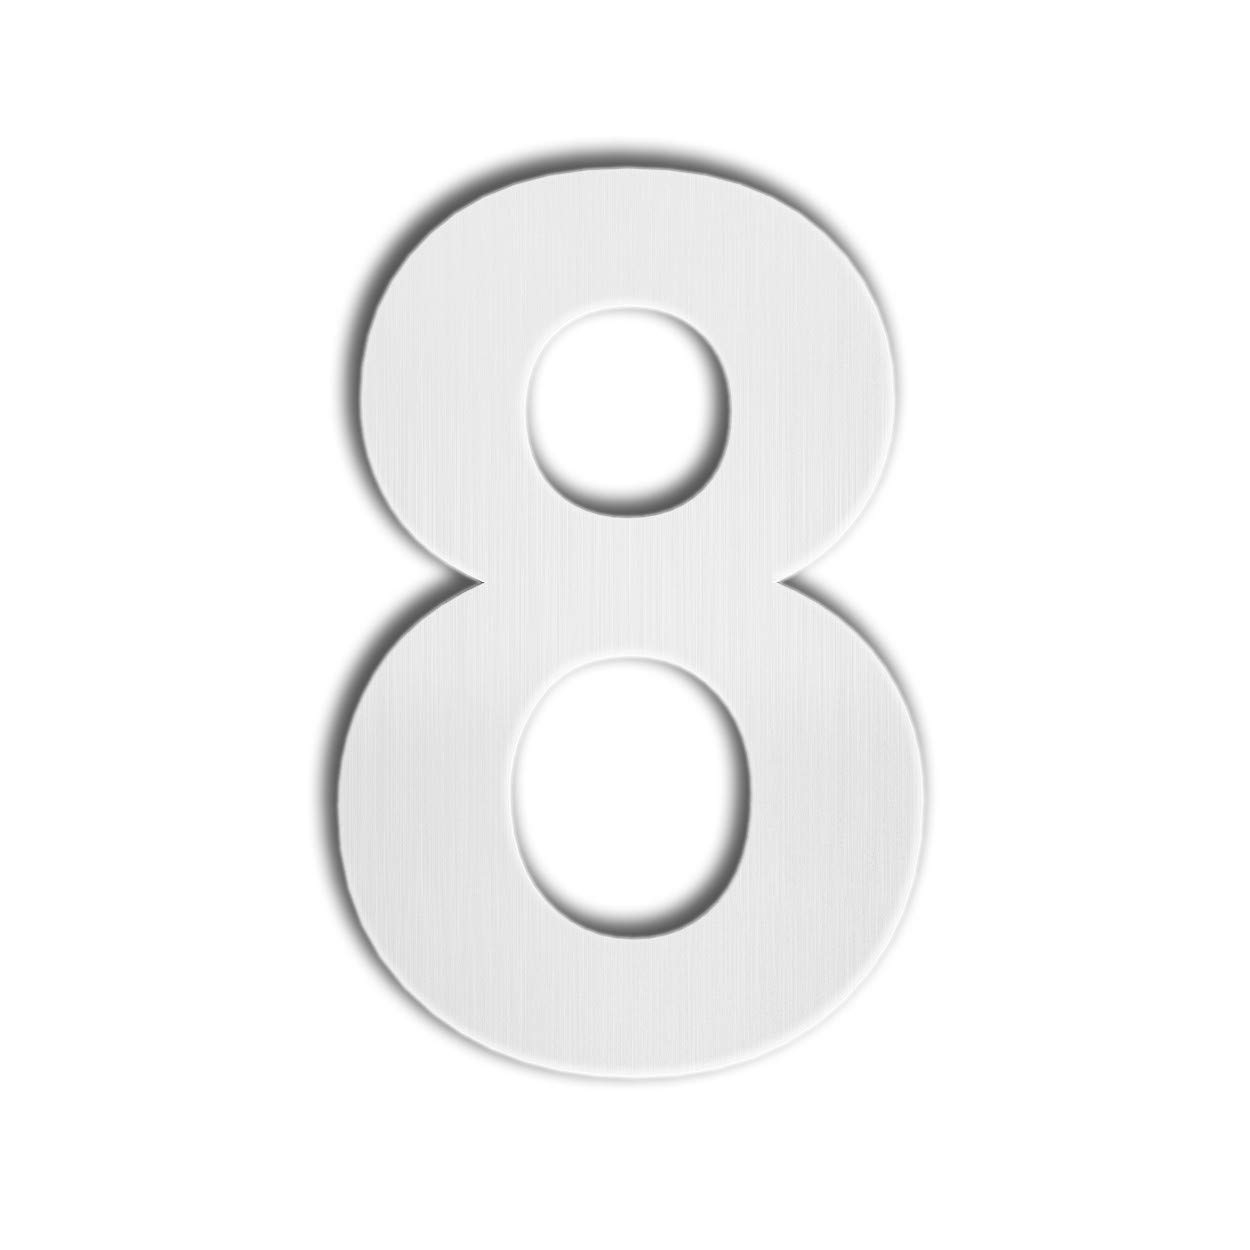 Qt modern house number super large 12 inch brushed stainless steel number 8 eight floating appearance easy to install and made of solid 304